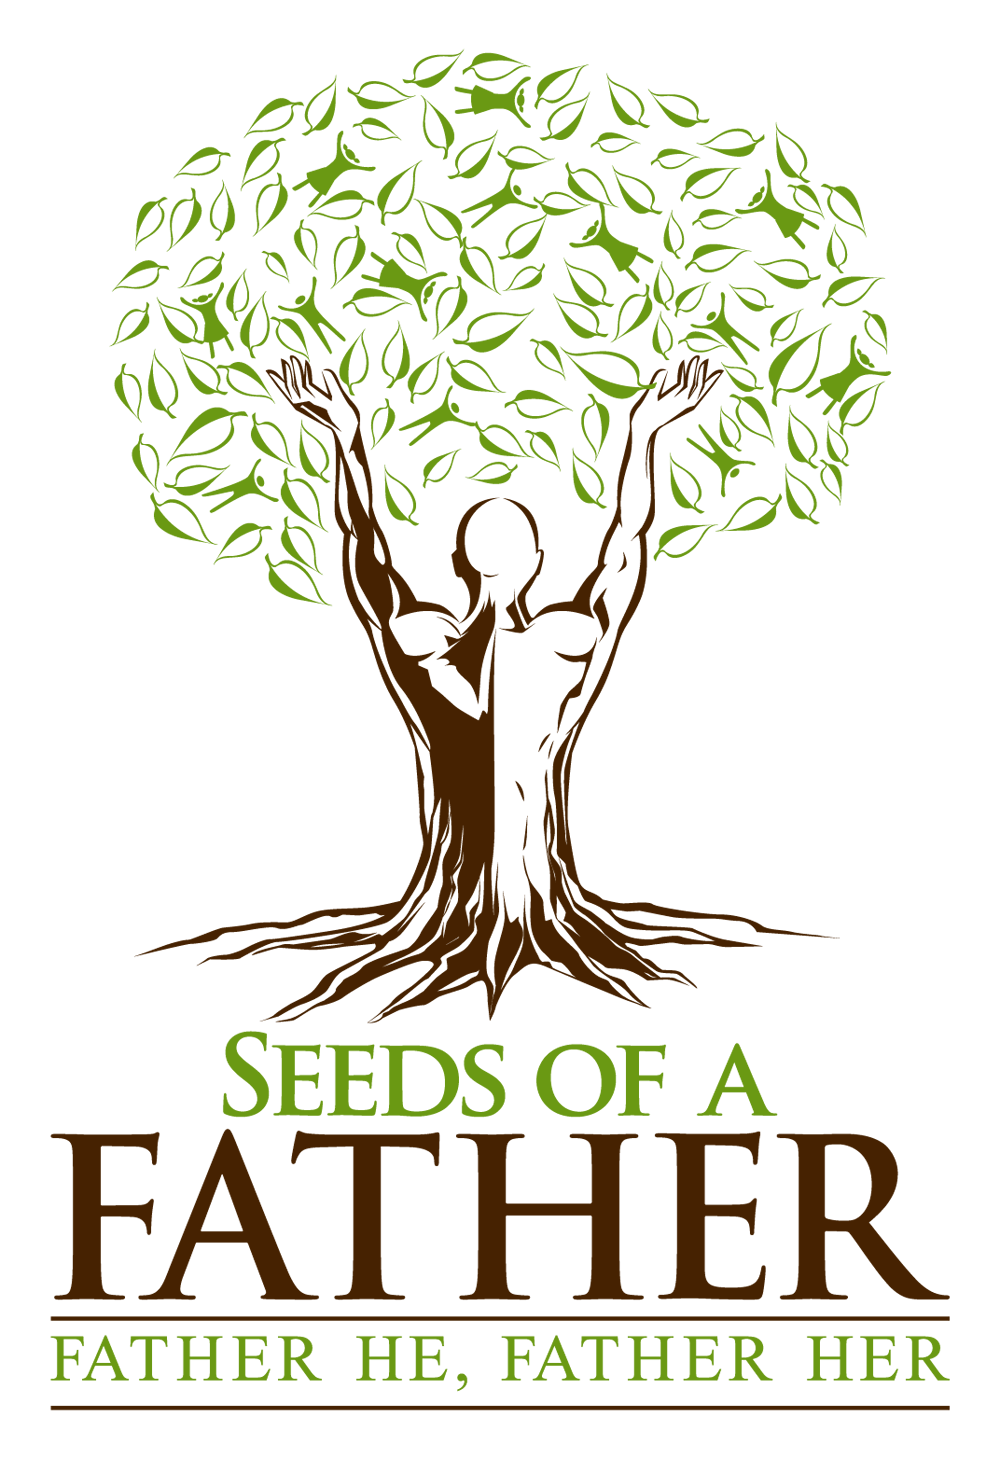 Human tree clipart image free stock Powerful church logo representing a growing tree with a human body ... image free stock